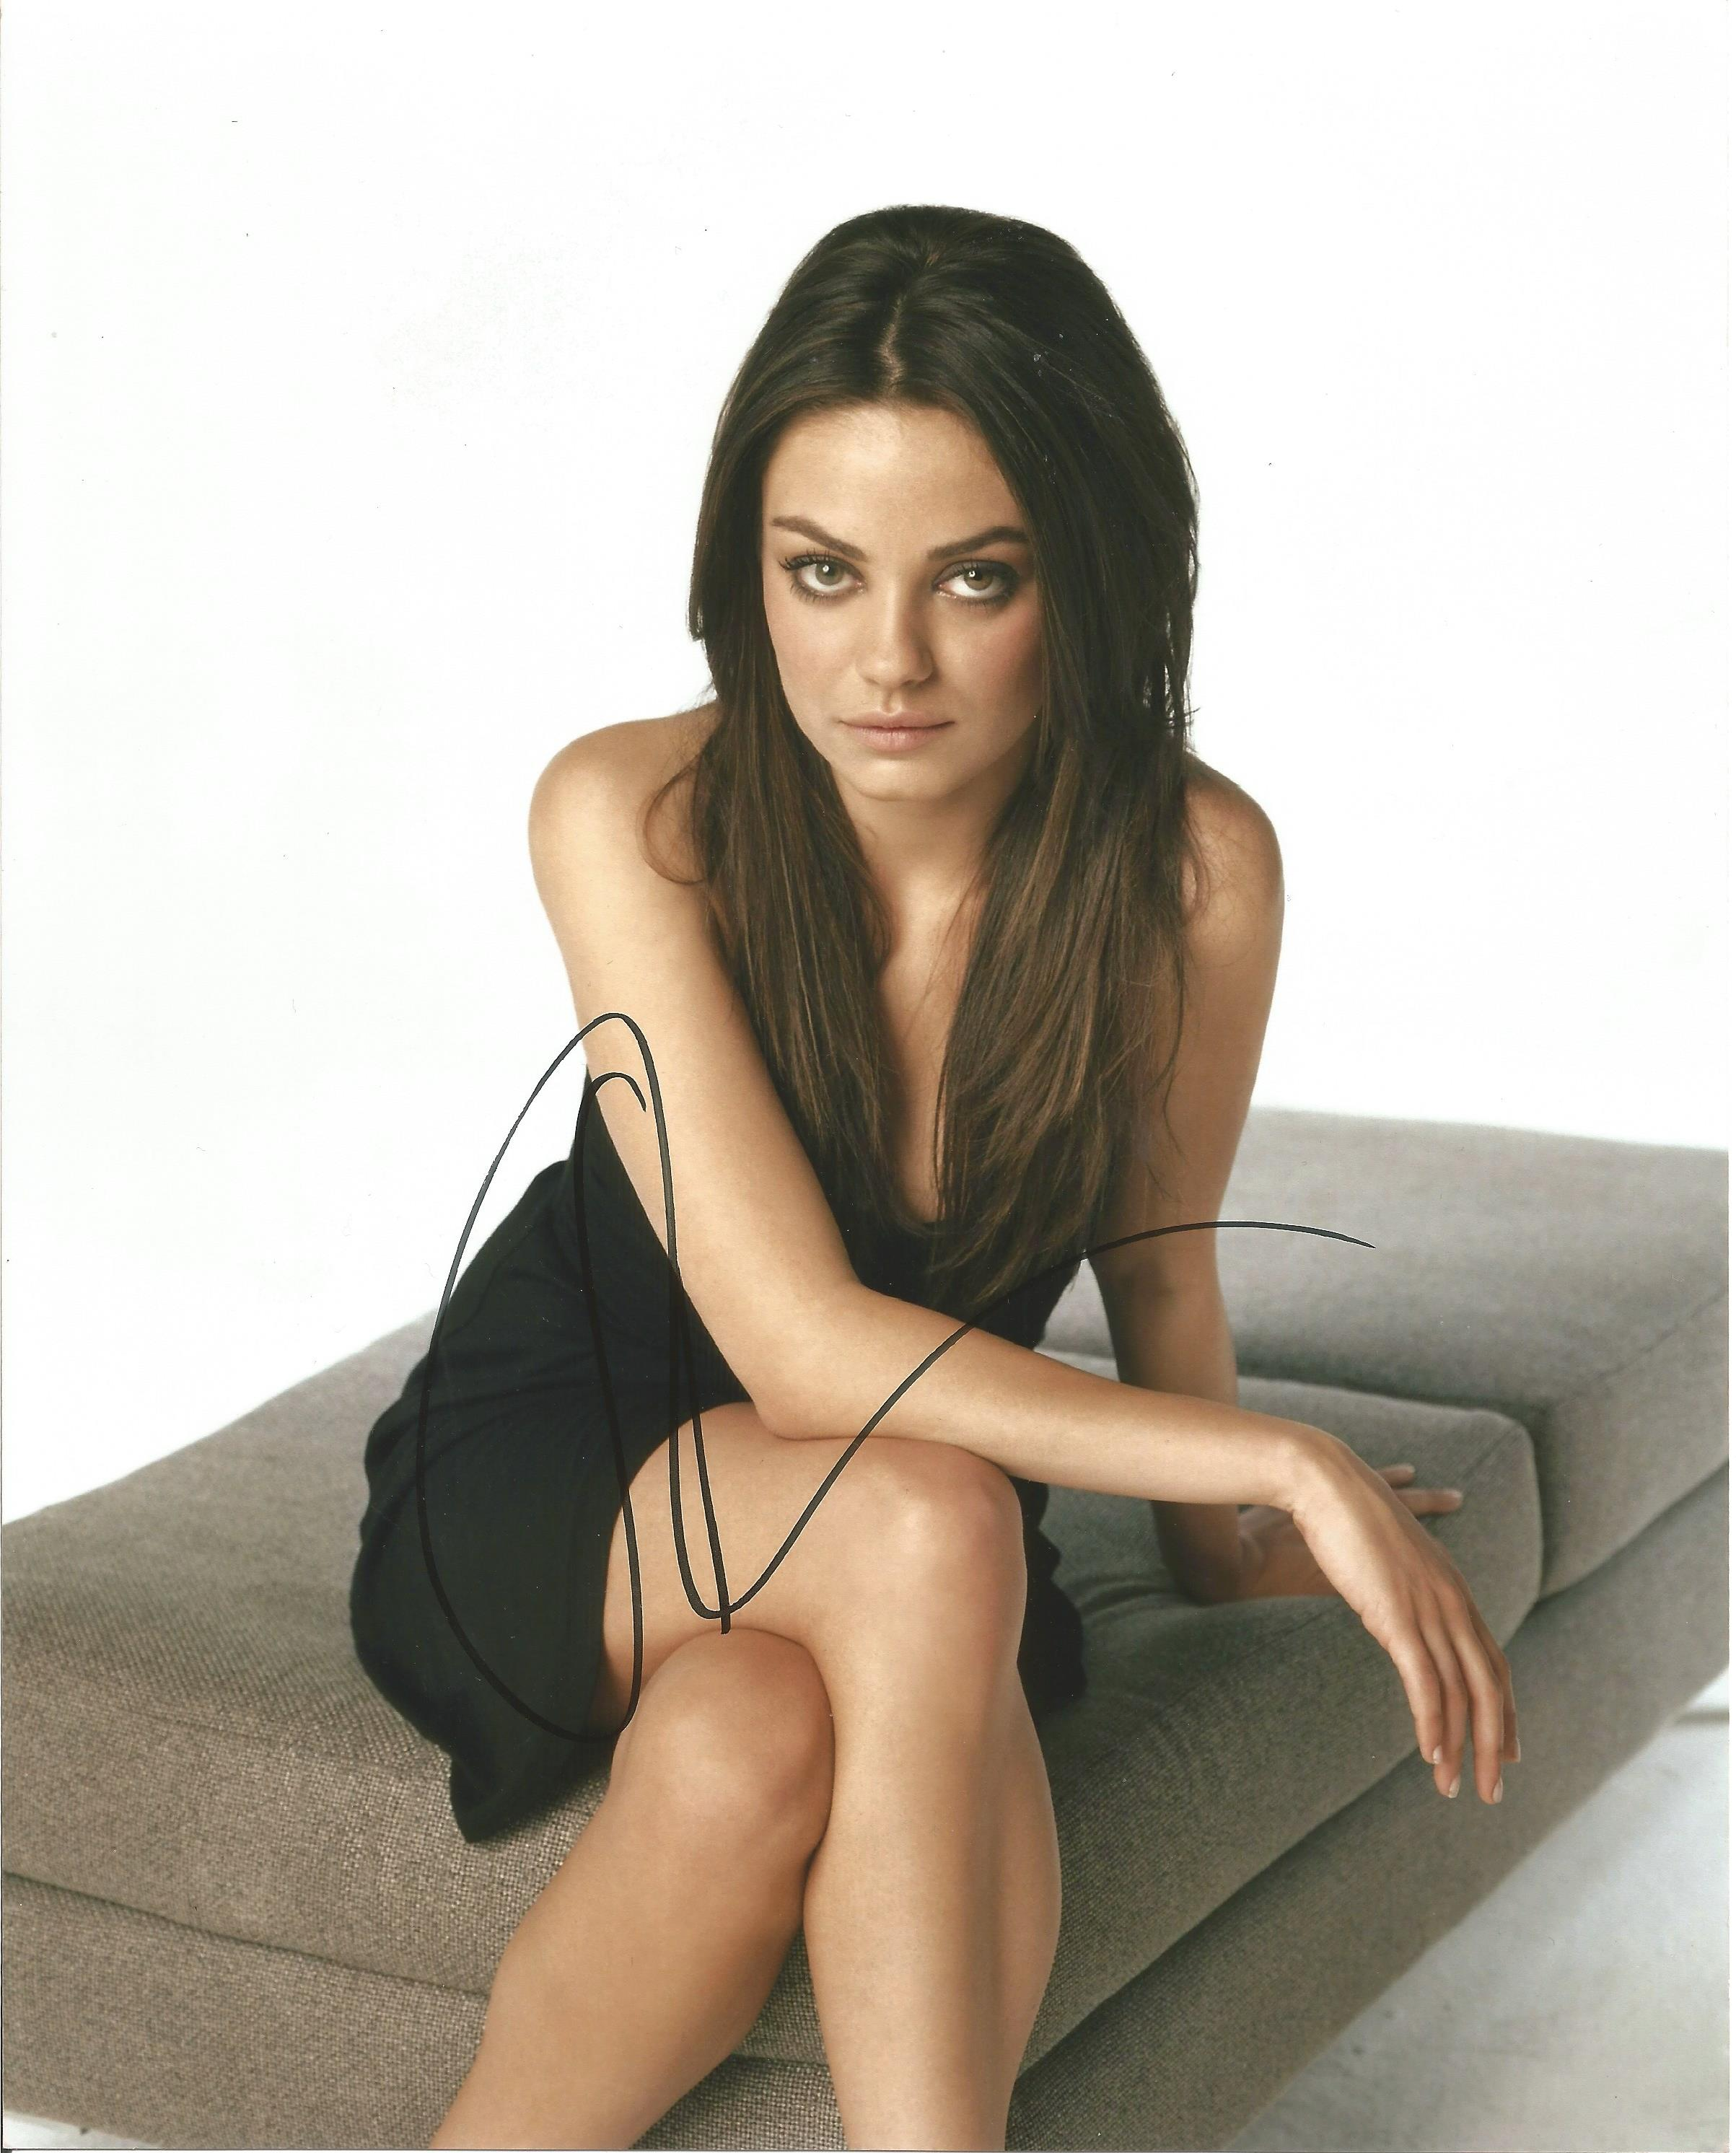 Lot 57 - Mila Kunis signed 10 x 8 colour Photoshoot Portrait Photo, from in person collection autographed